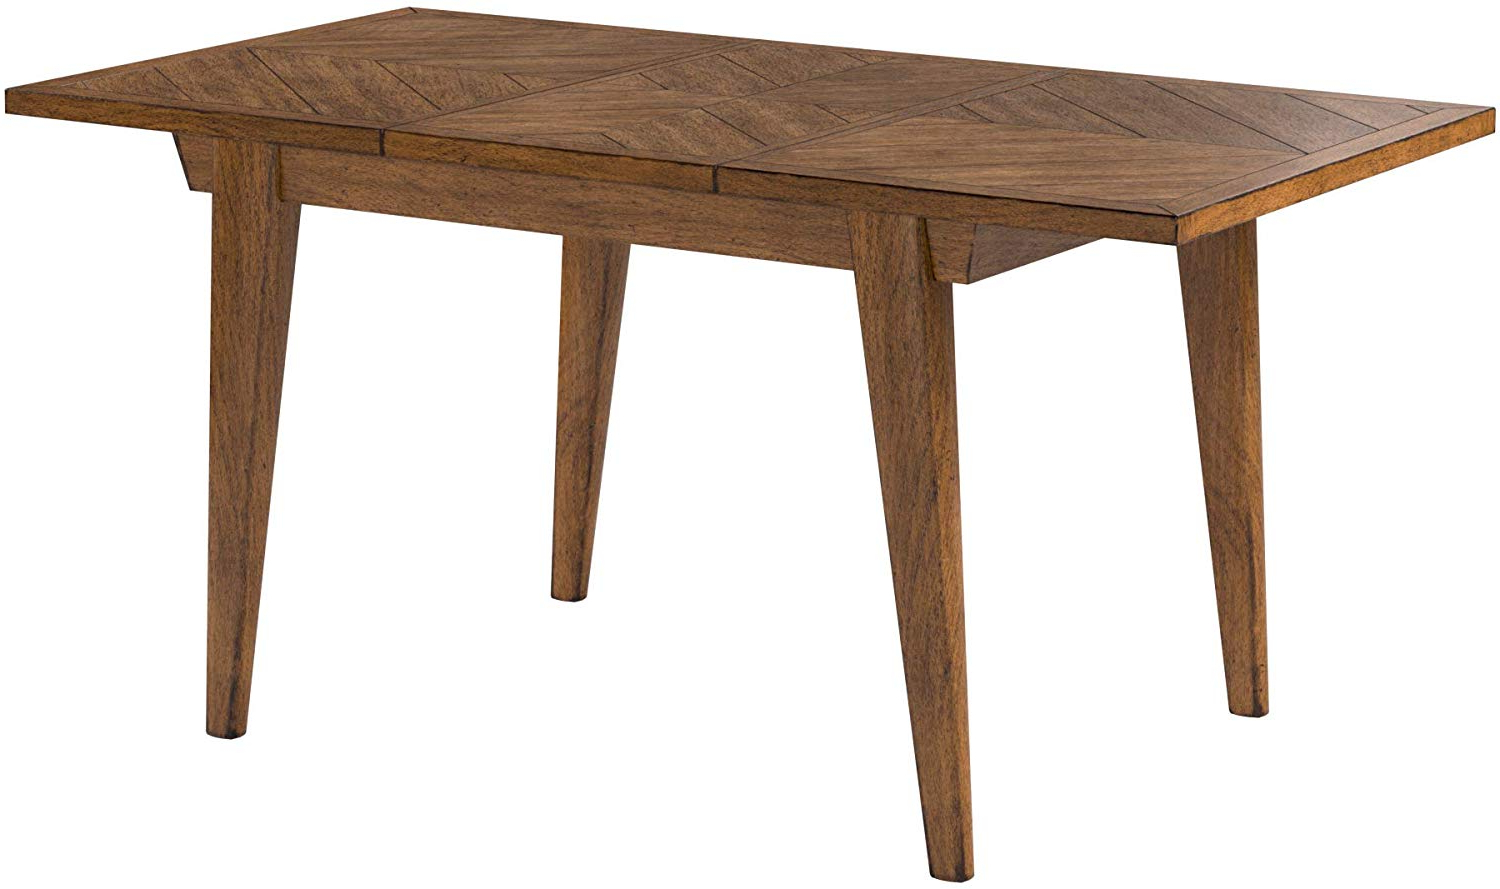 """Medium Dining Tables In Most Up To Date Rivet Ian Modern Medium Dining Kitchen Table, Expandable, 60 80""""w, Brown (View 10 of 25)"""